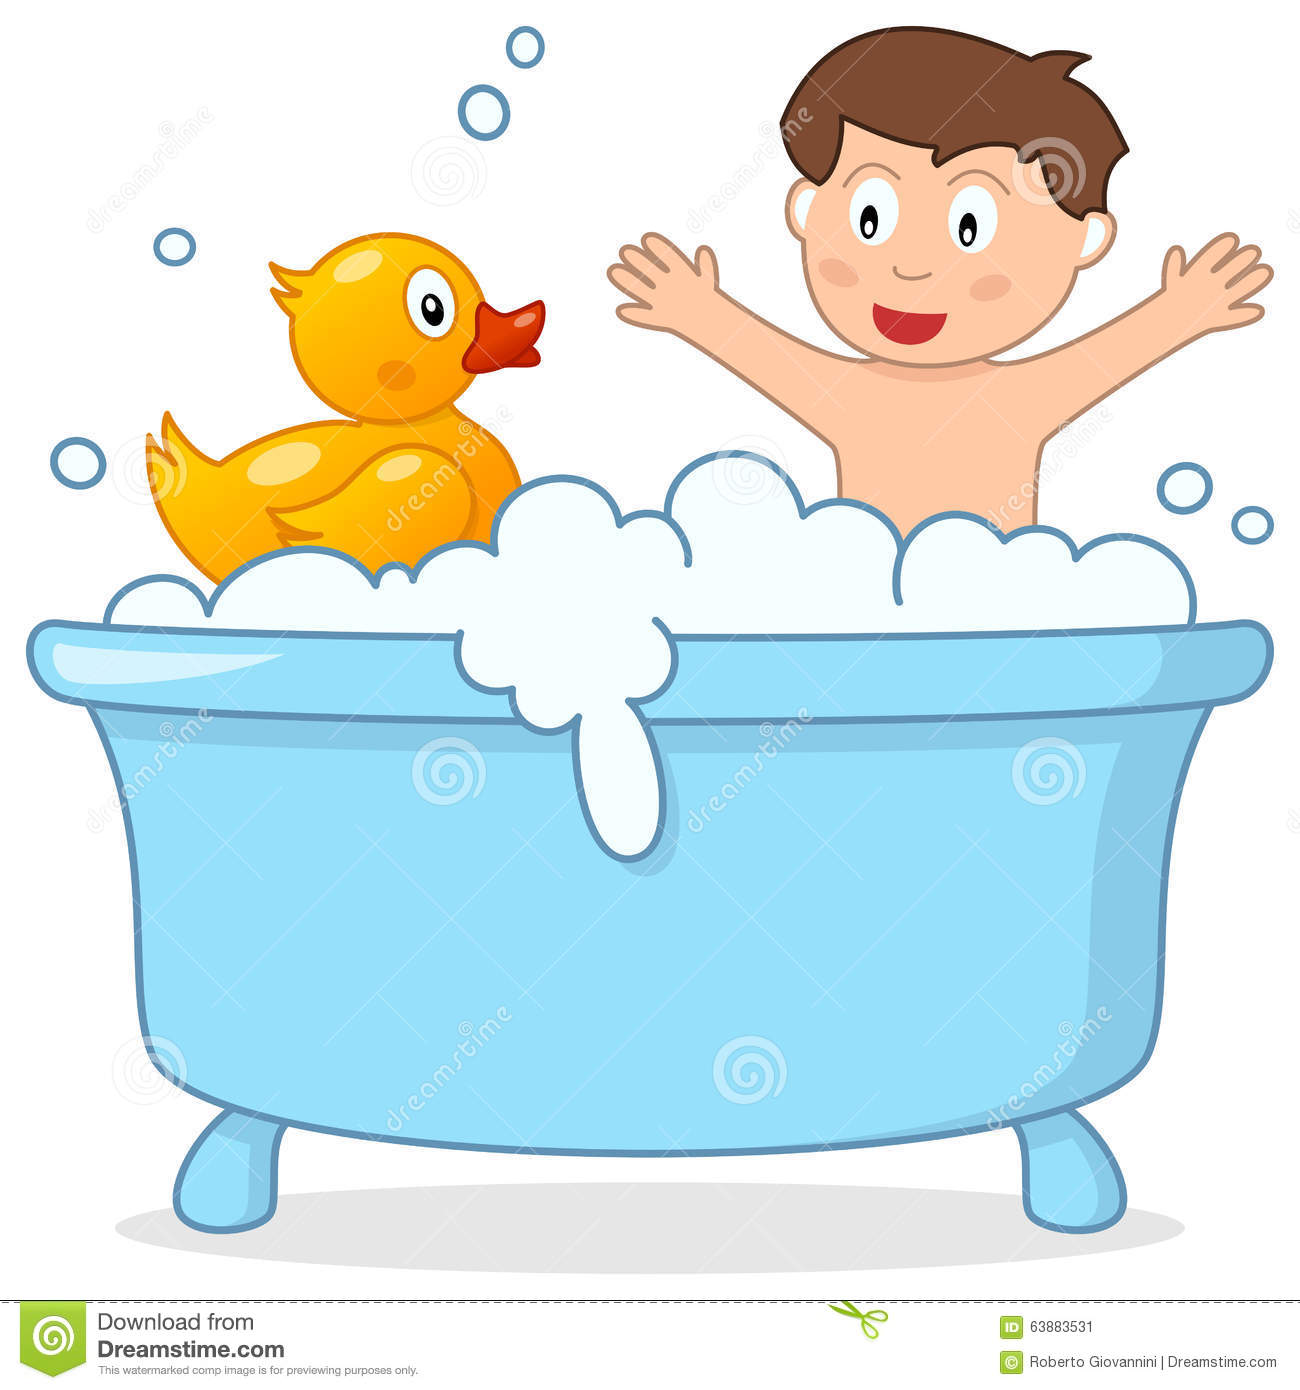 Bath Time With Little Boy .-Bath Time With Little Boy .-8